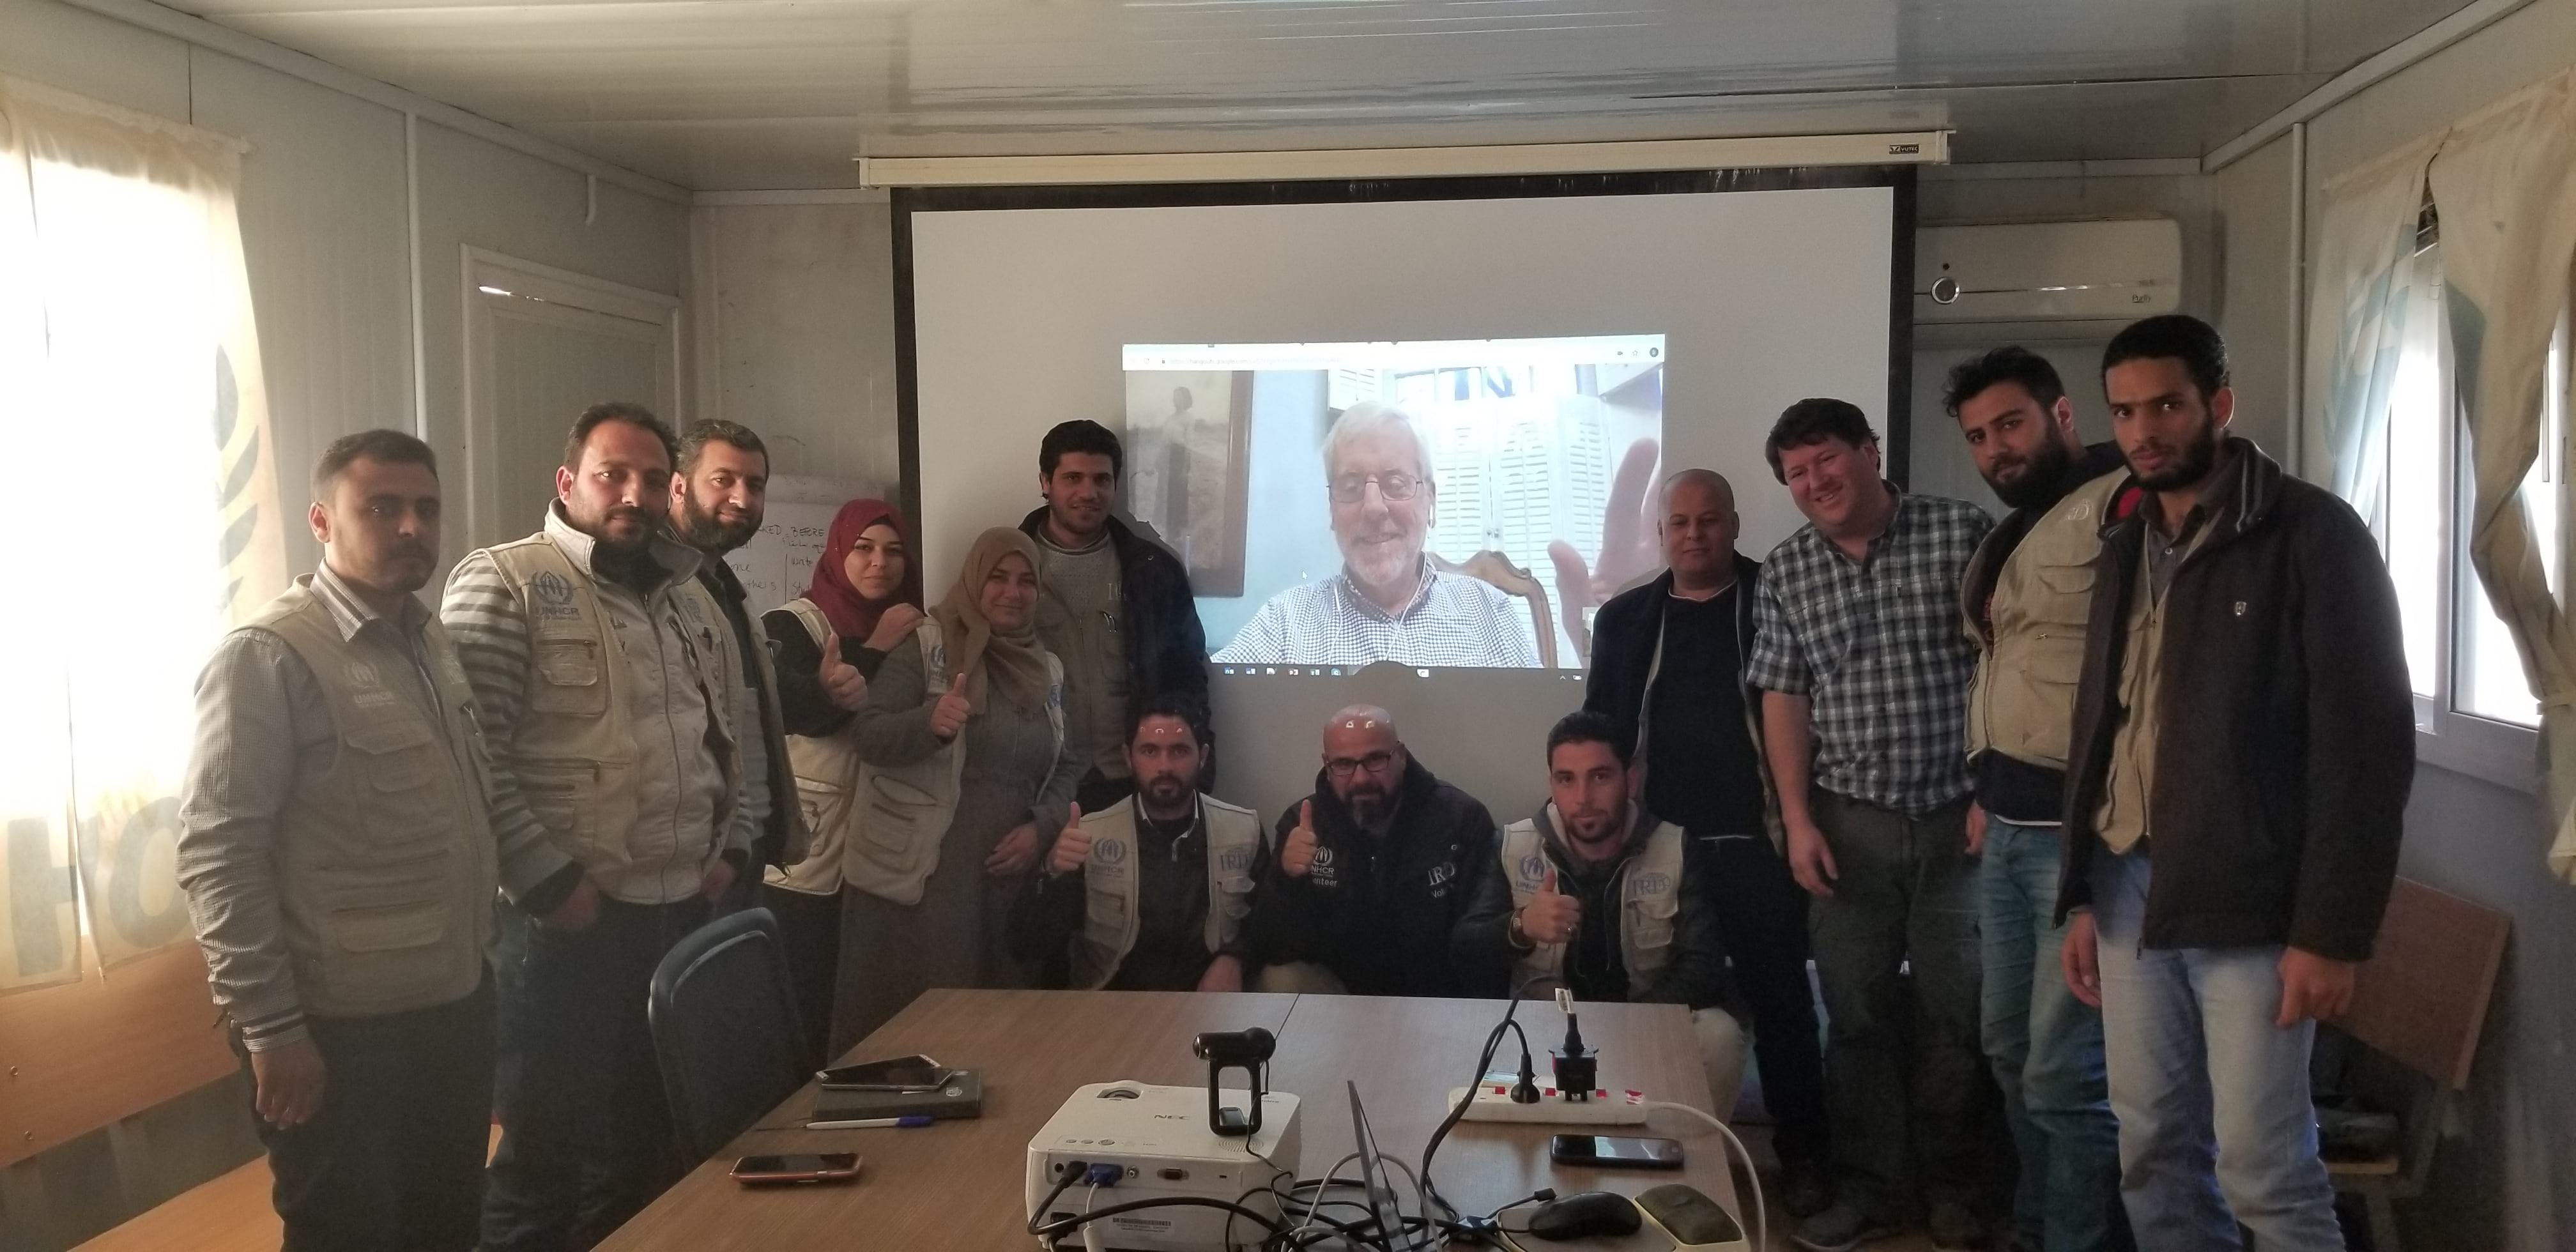 RefuGIS paticipants pose for a photo next to Allen Carroll's video stream